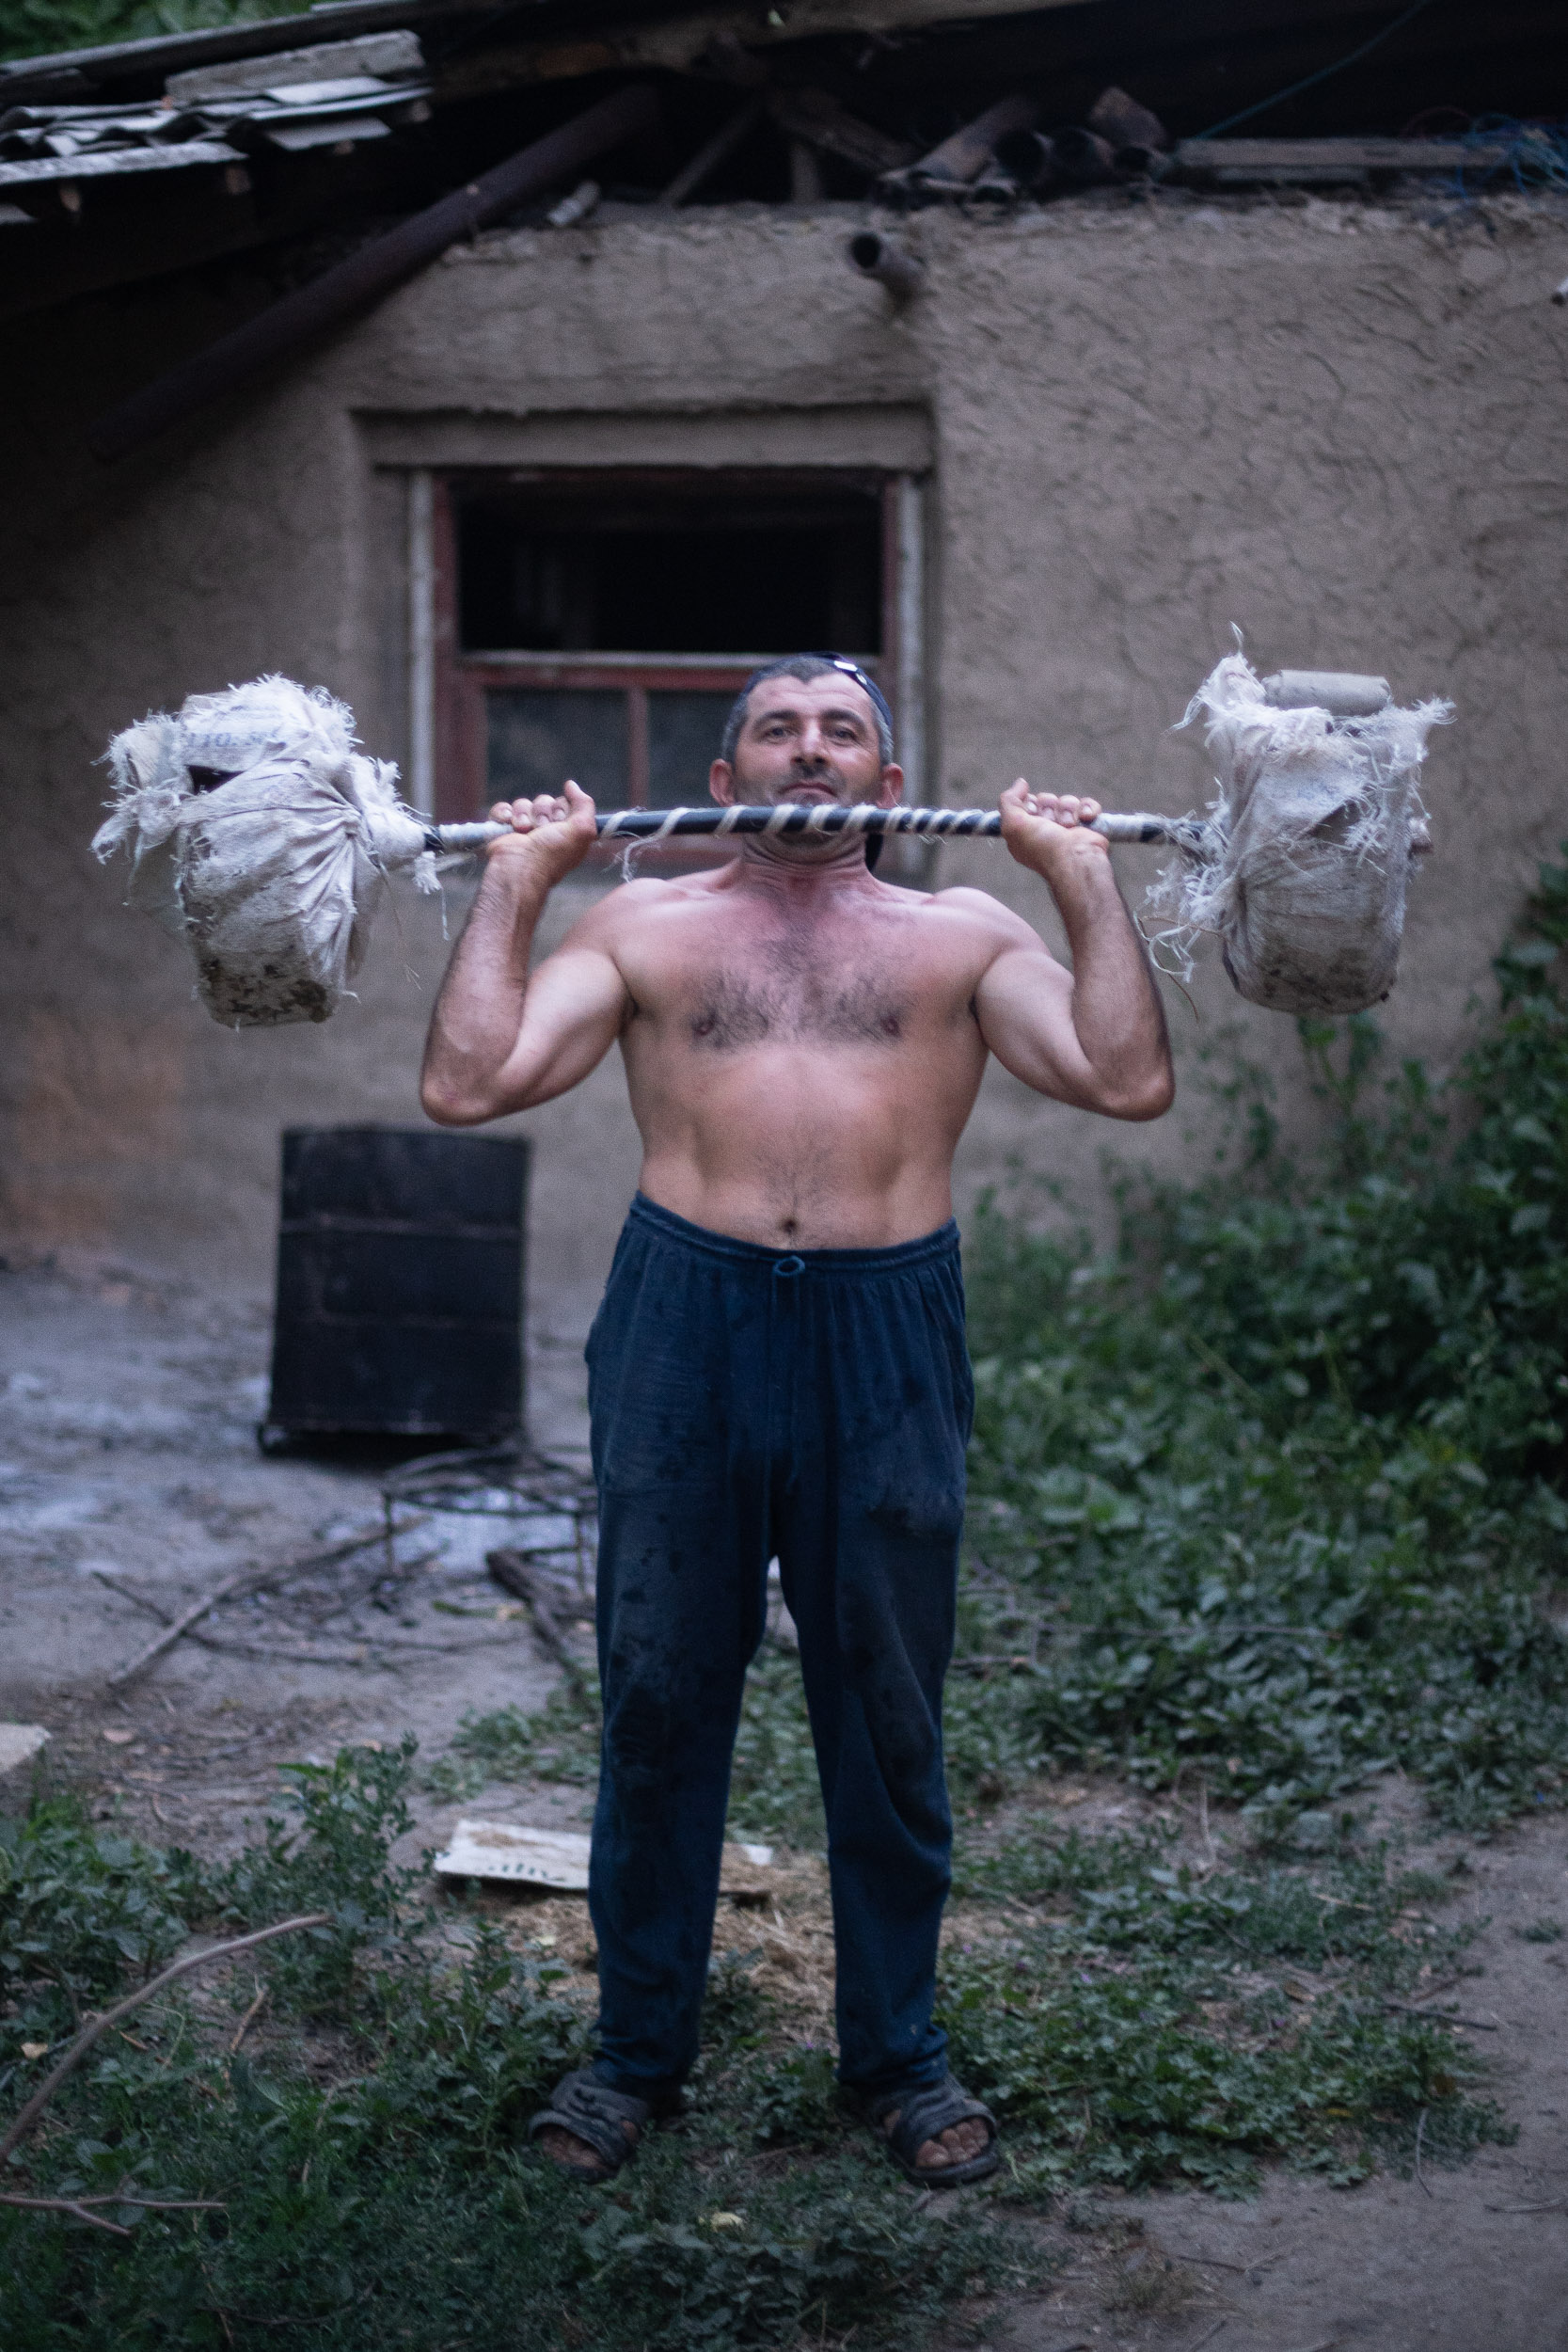 Azerbajiani man training